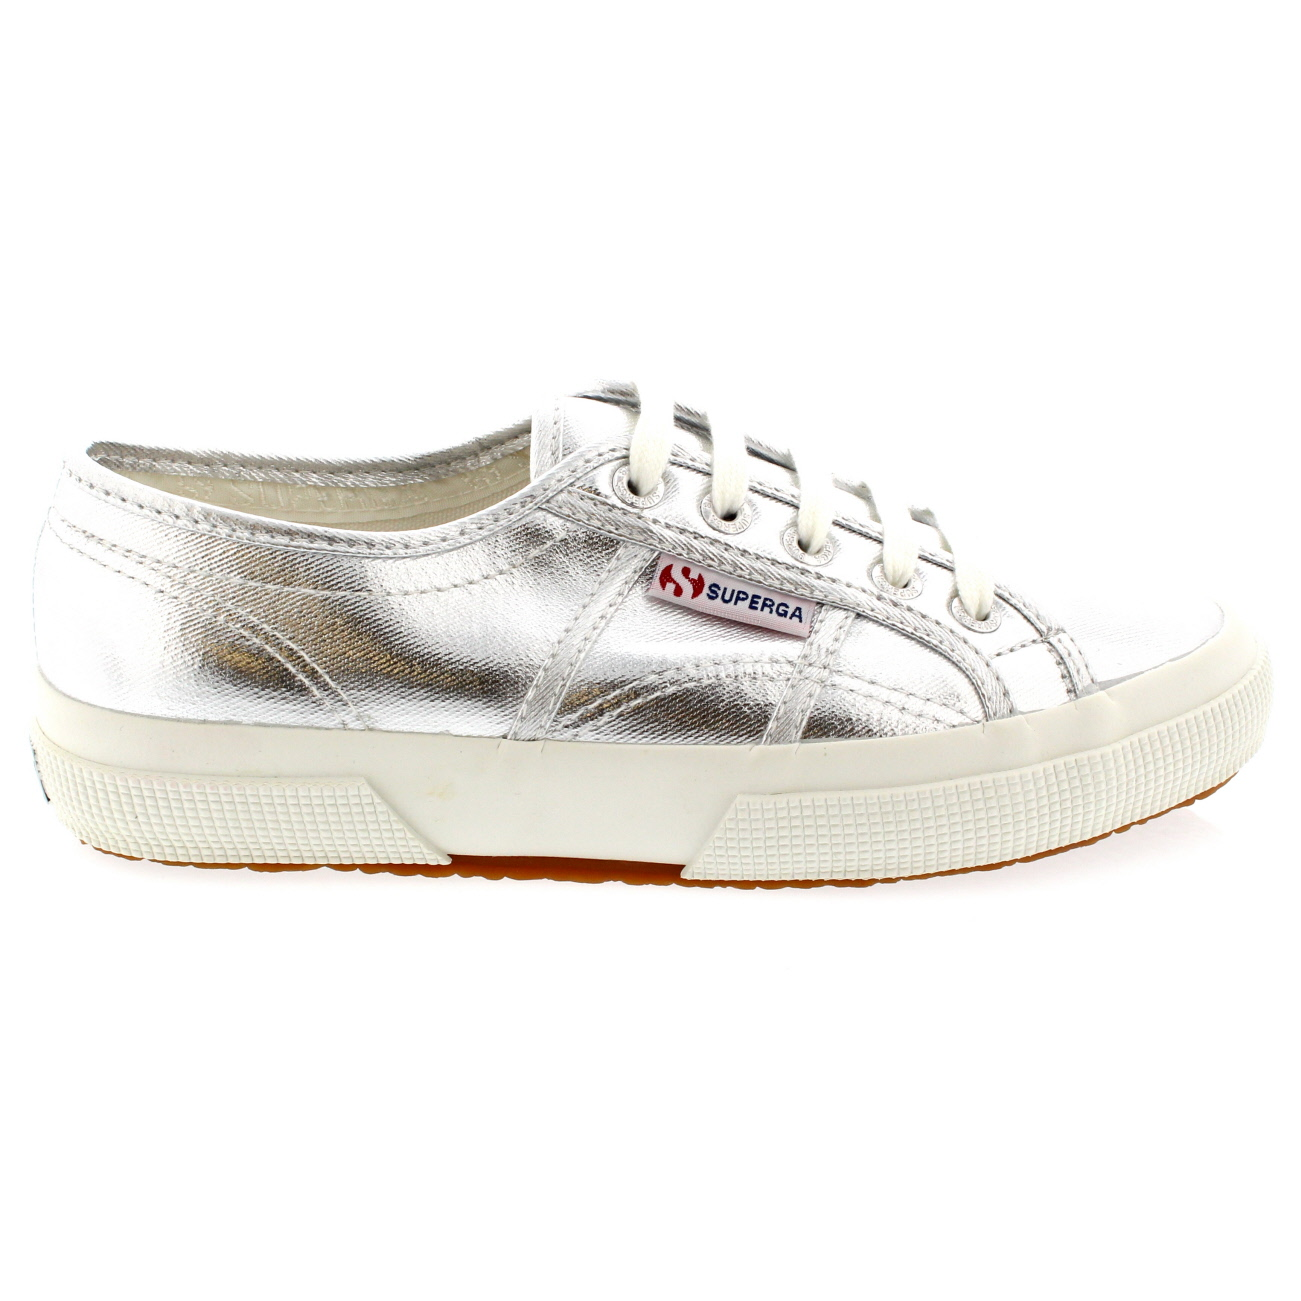 Superga Metallic Low-Top Sneakers